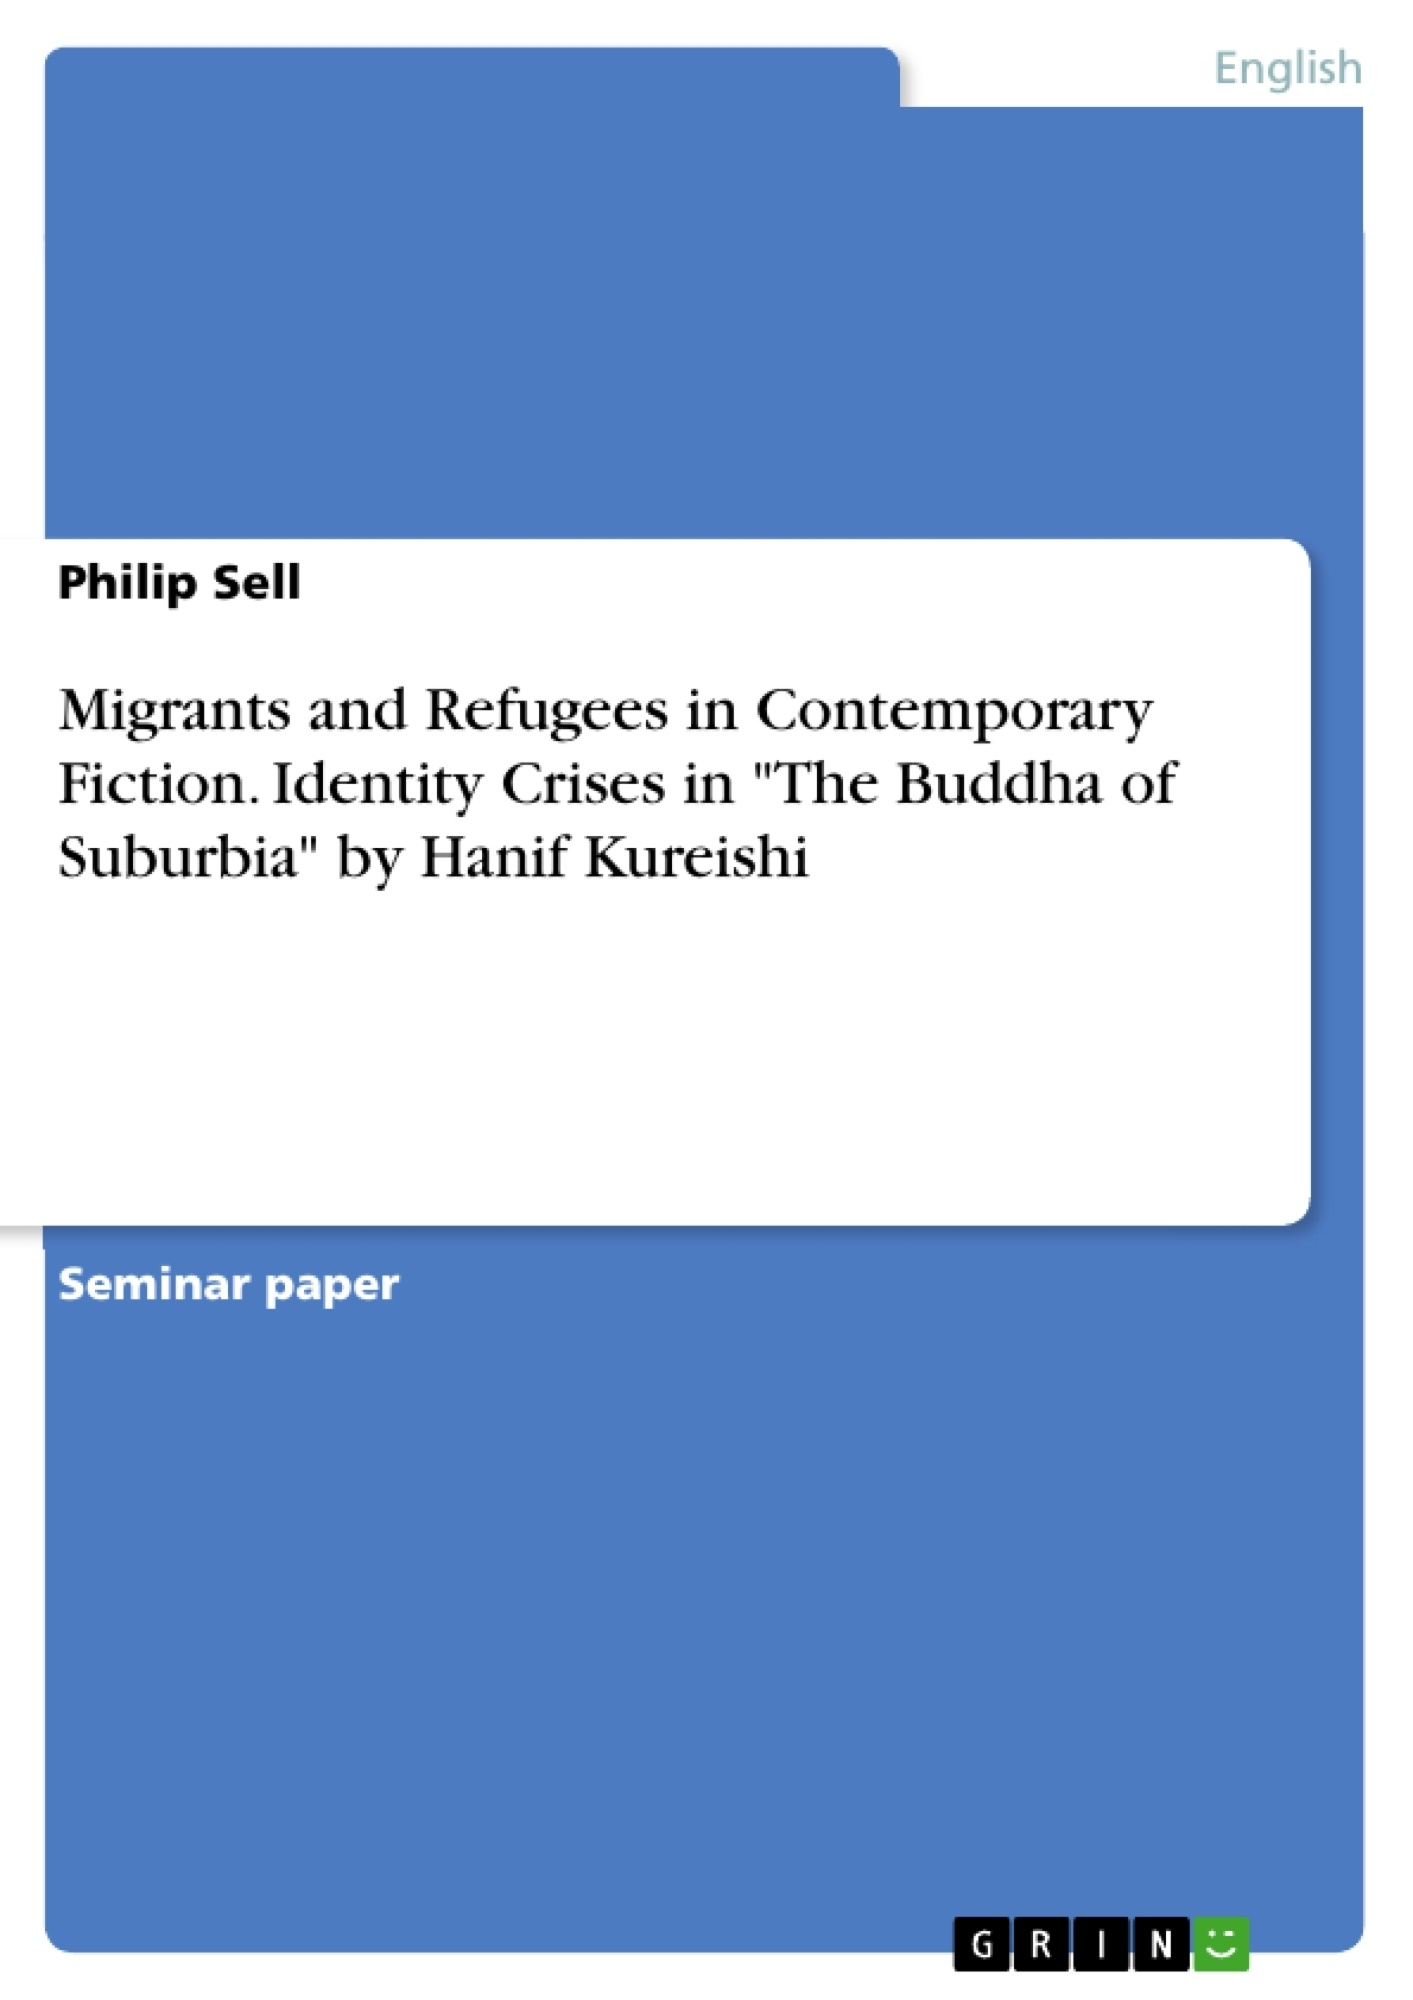 """Title: Migrants and Refugees in Contemporary Fiction. Identity Crises in """"The Buddha of Suburbia"""" by Hanif Kureishi"""